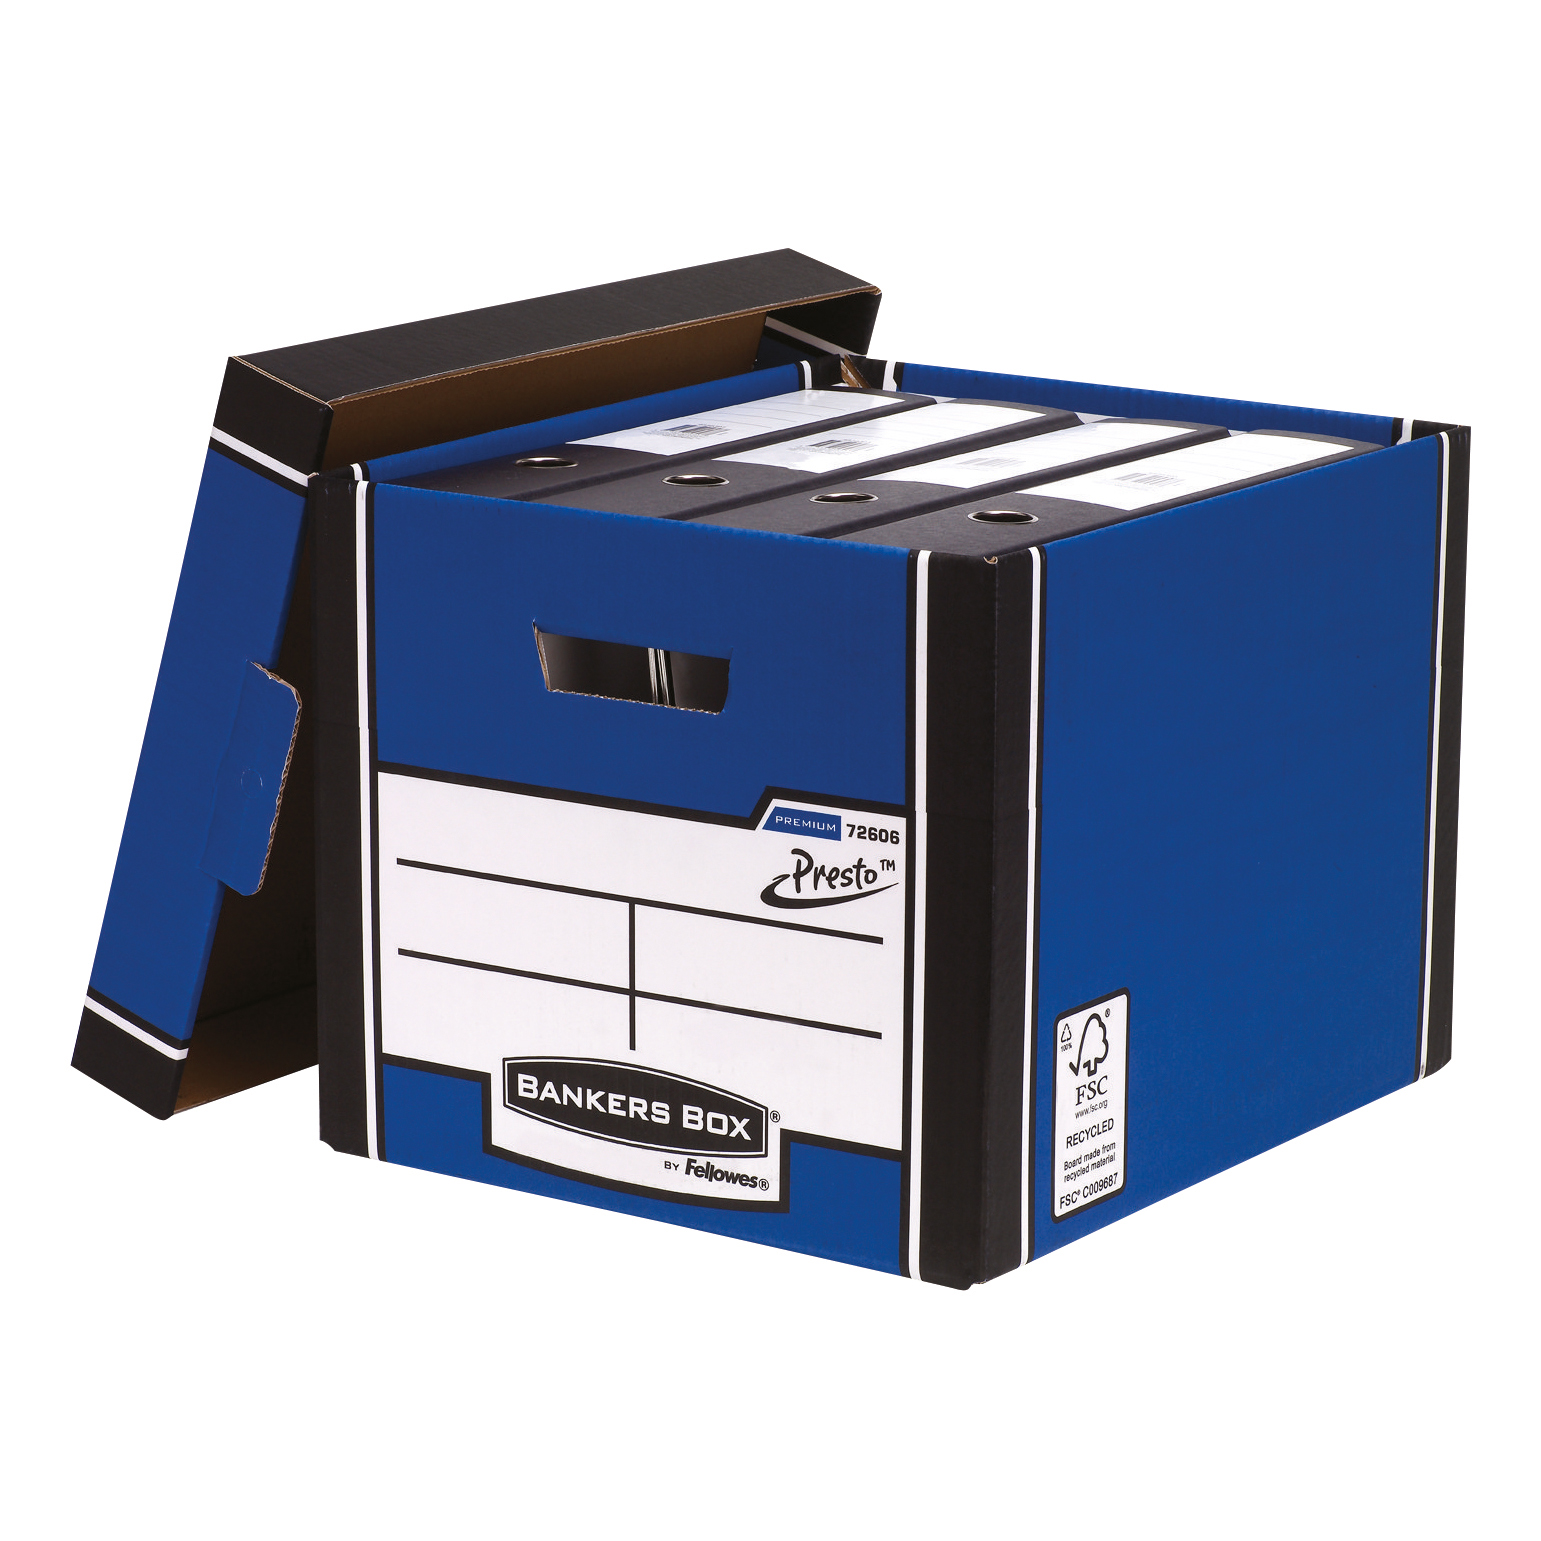 Storage Boxes Bankers Box Premium Storage Box (Presto) Tall Blue FSC Ref 7260602 Pack 10